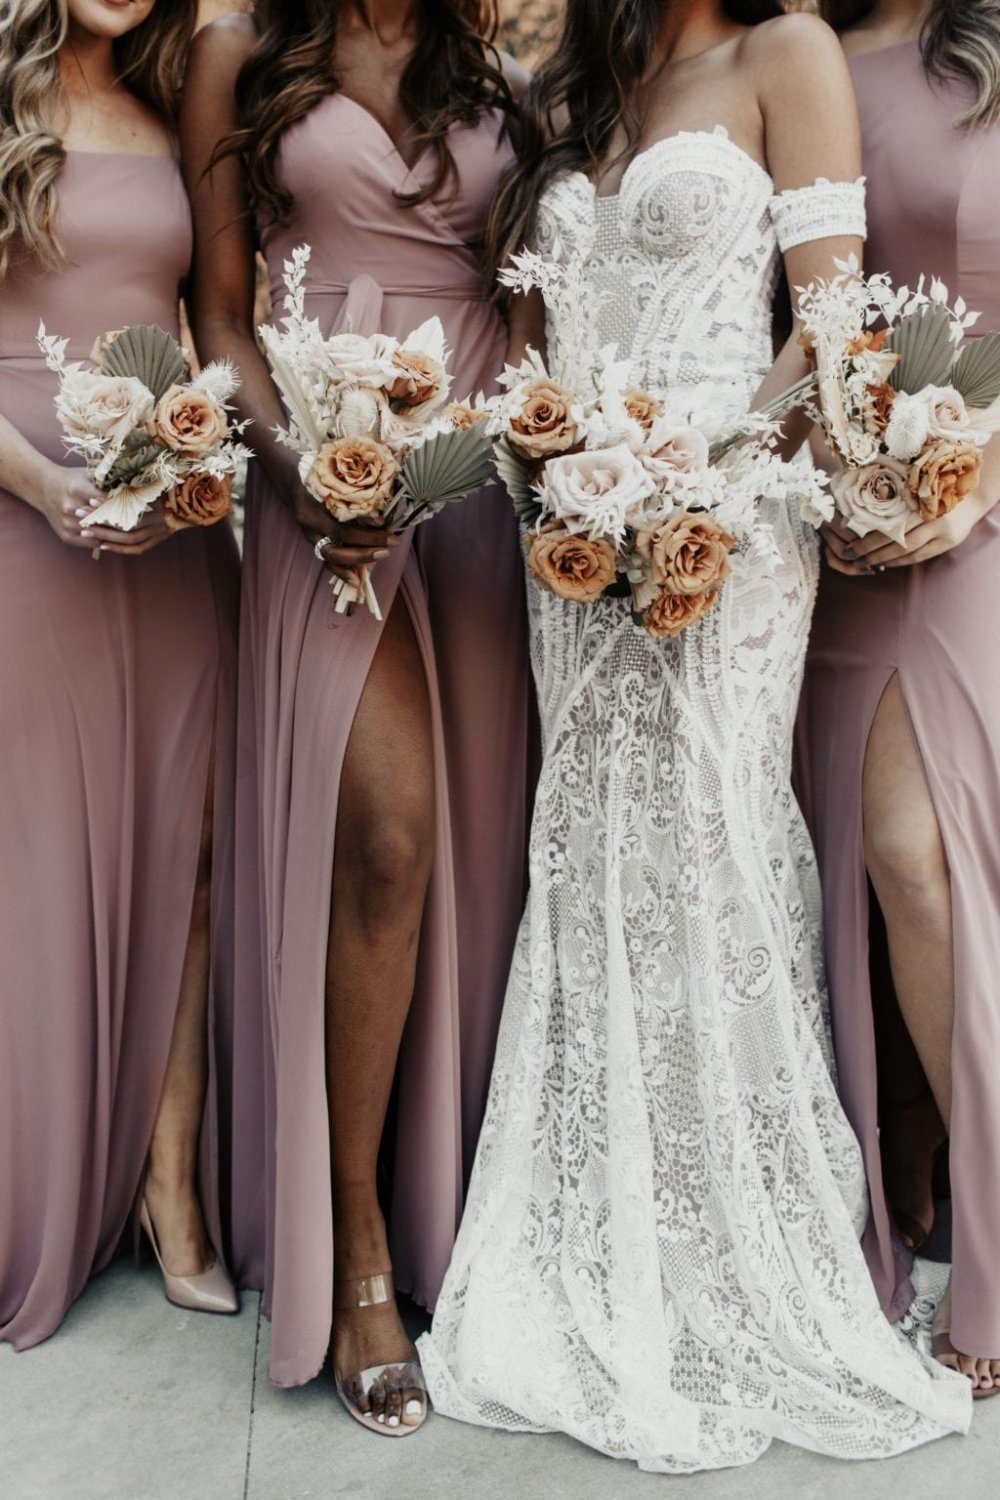 Get Ready To Text Your Group Chat After Years Of Our Brides Asking Where The In 2020 Glamorous Bridesmaids Dresses Bridesmaid Dresses Online Unique Bridesmaid Dresses